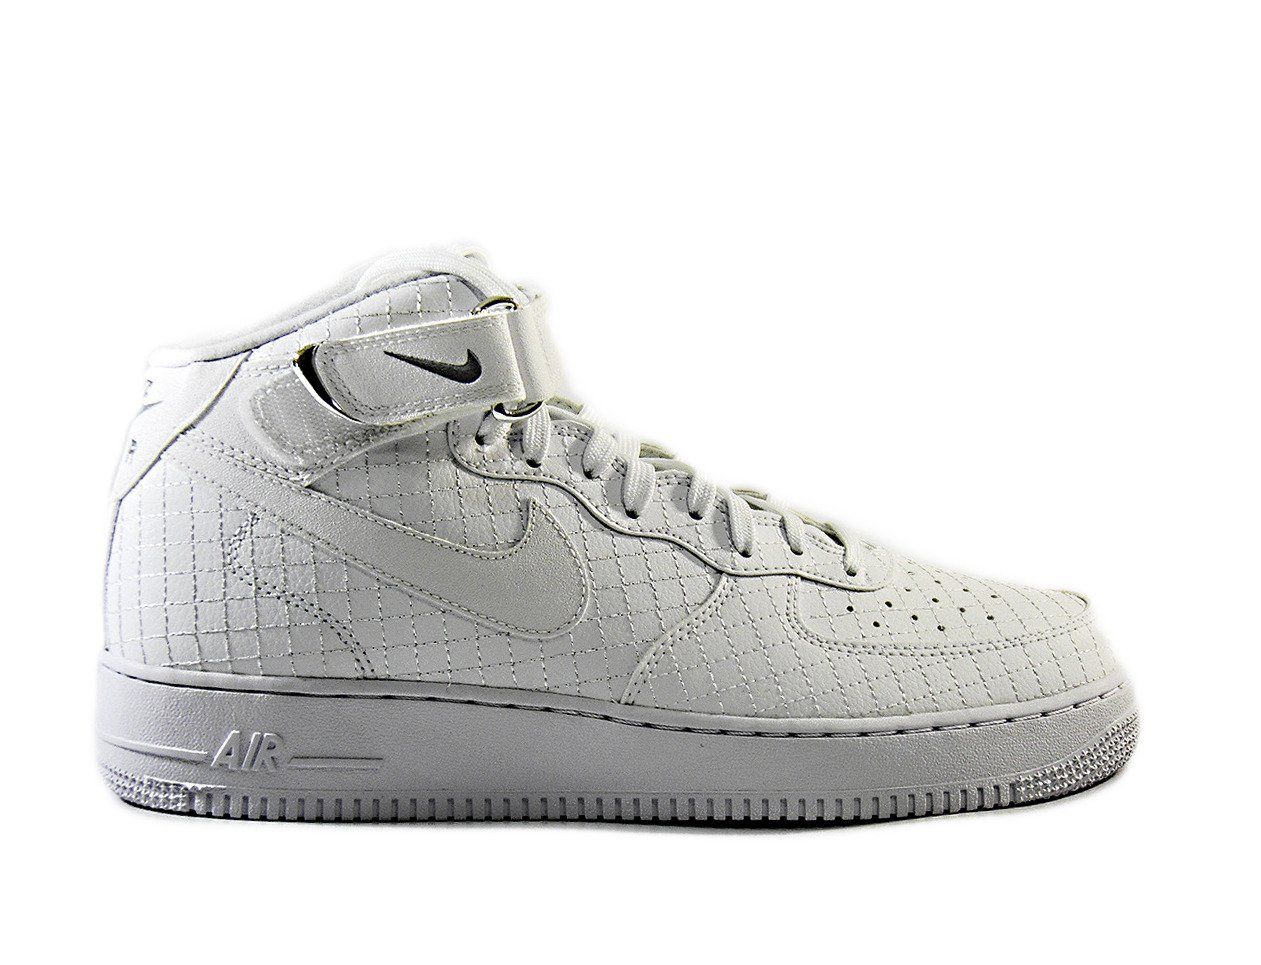 official photos 05fde f1537 ger pl Nike-Air-Force-1-Mid-07-LV8-Schuhe-804609-100--16696 7.jpg